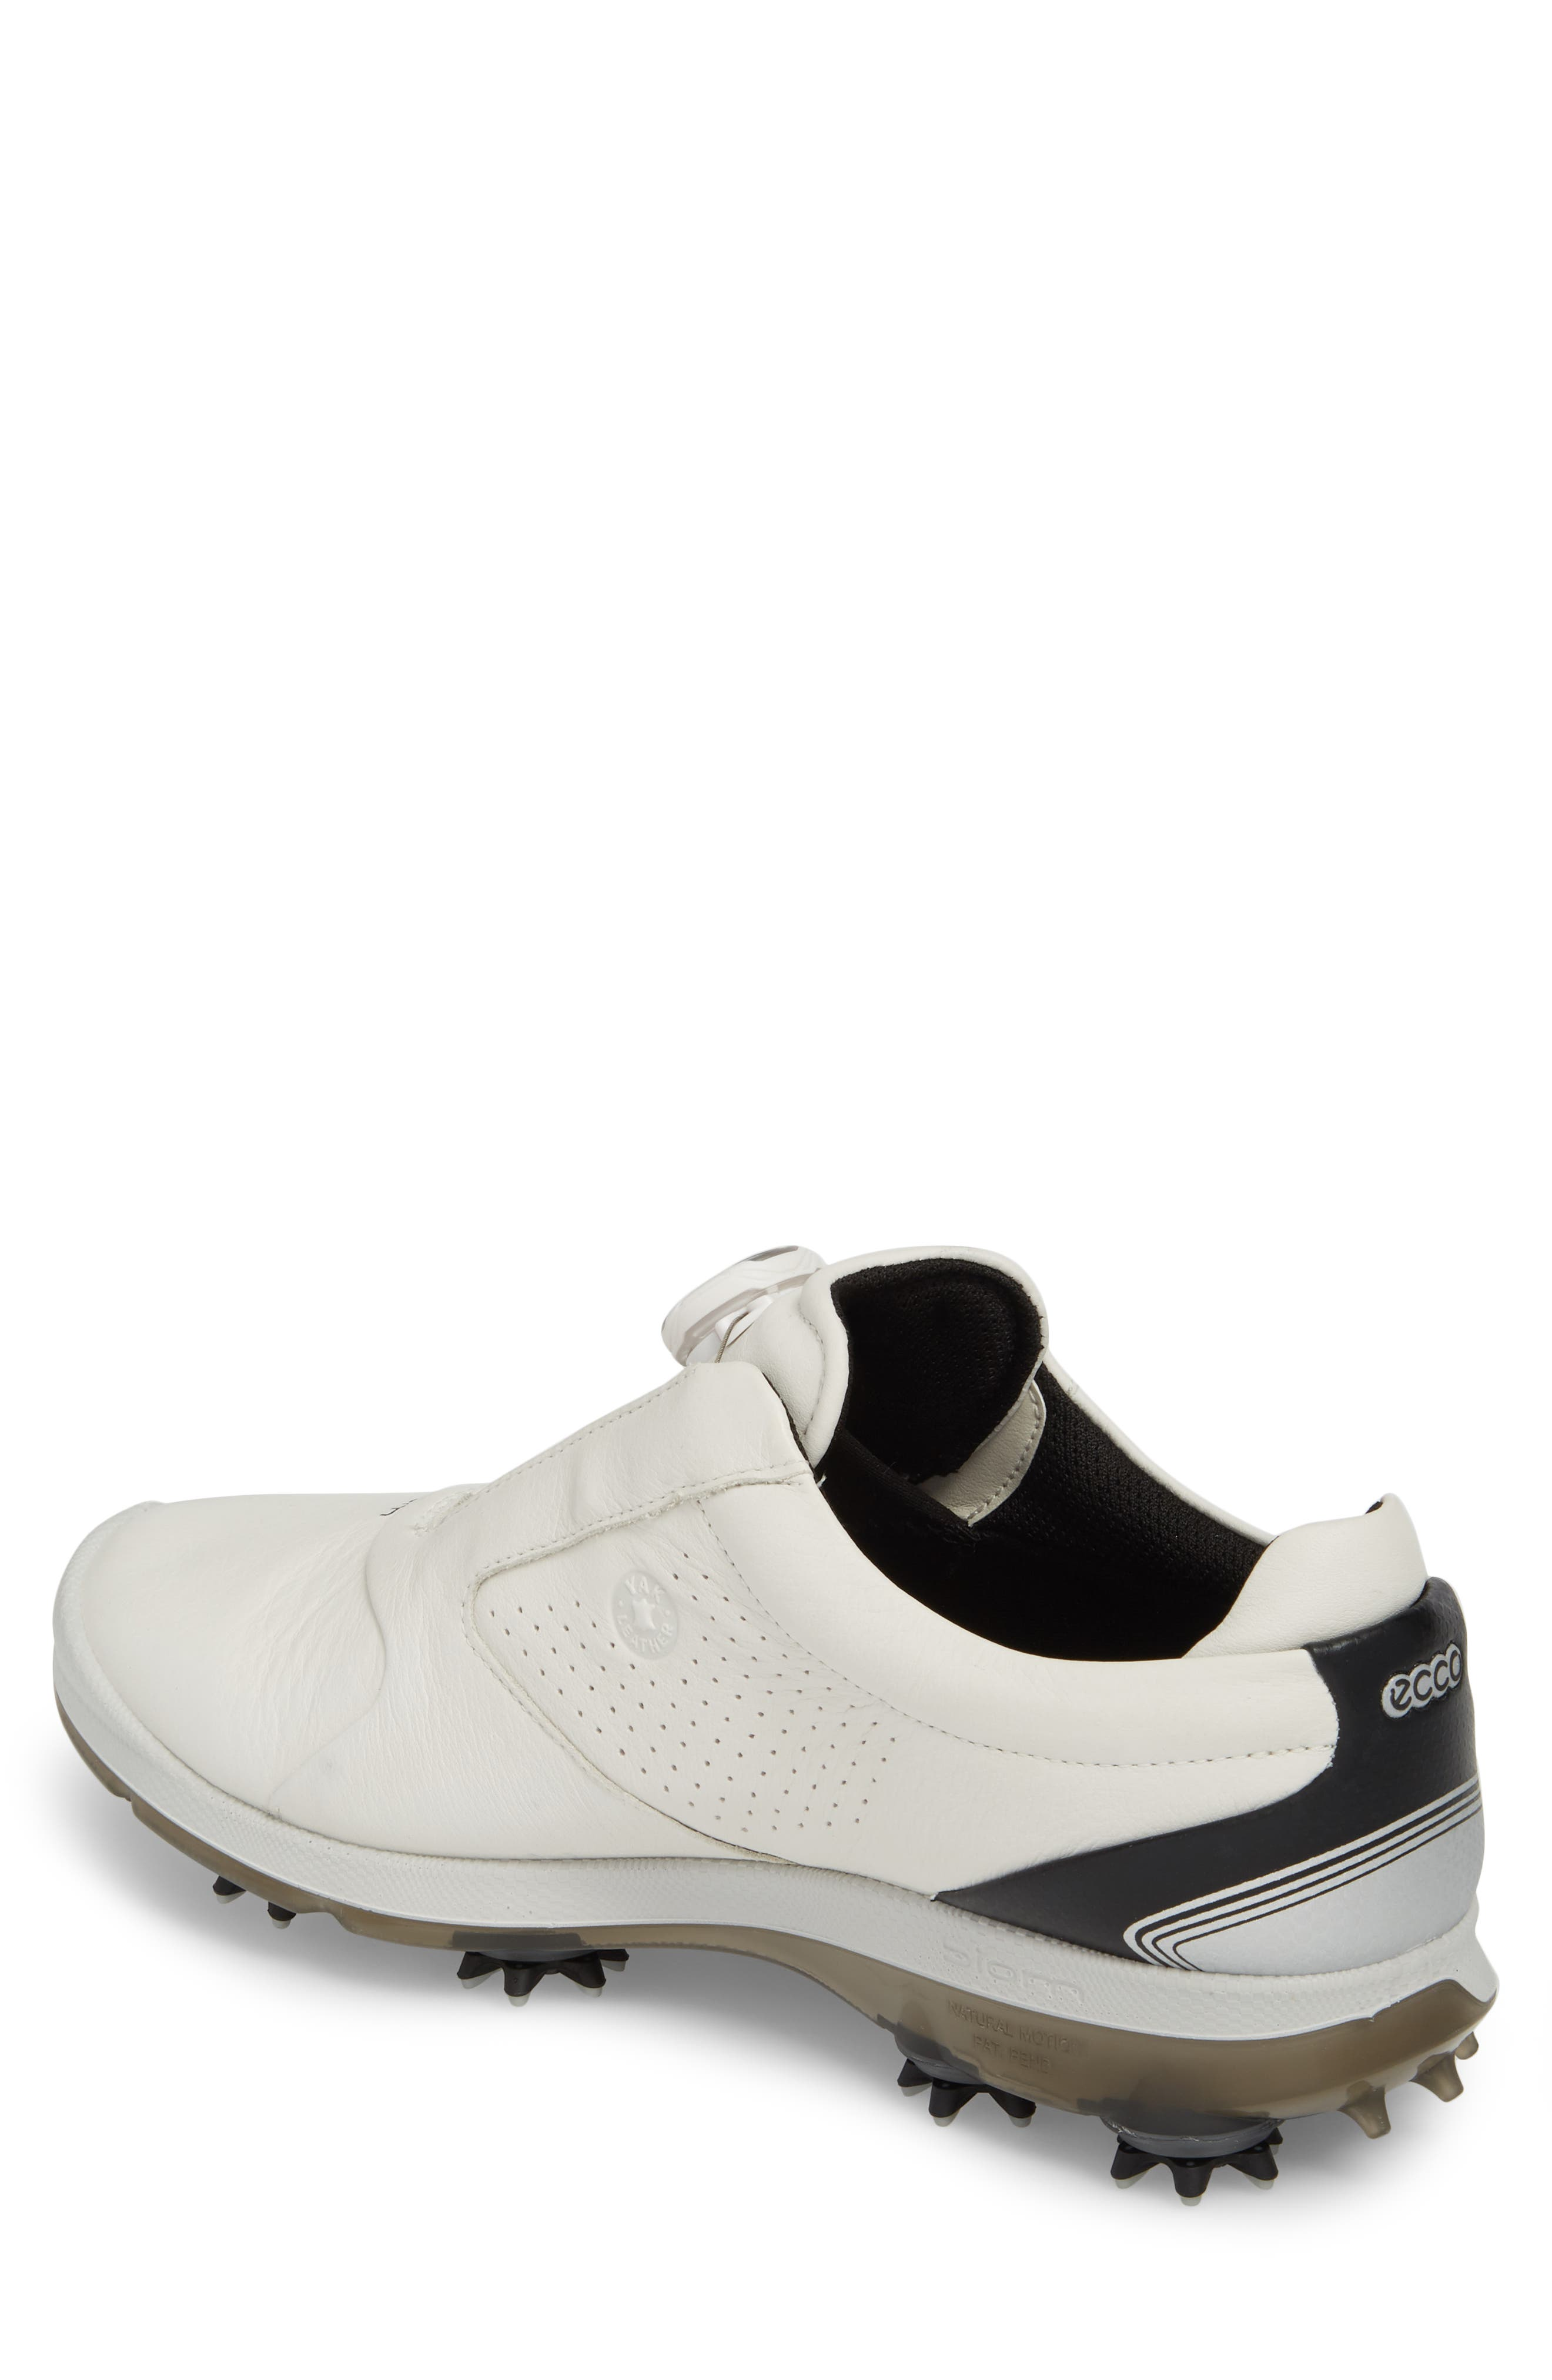 BIOM 2 BOA Gore-Tex<sup>®</sup> Golf Shoe,                             Alternate thumbnail 2, color,                             White/ Black Leather